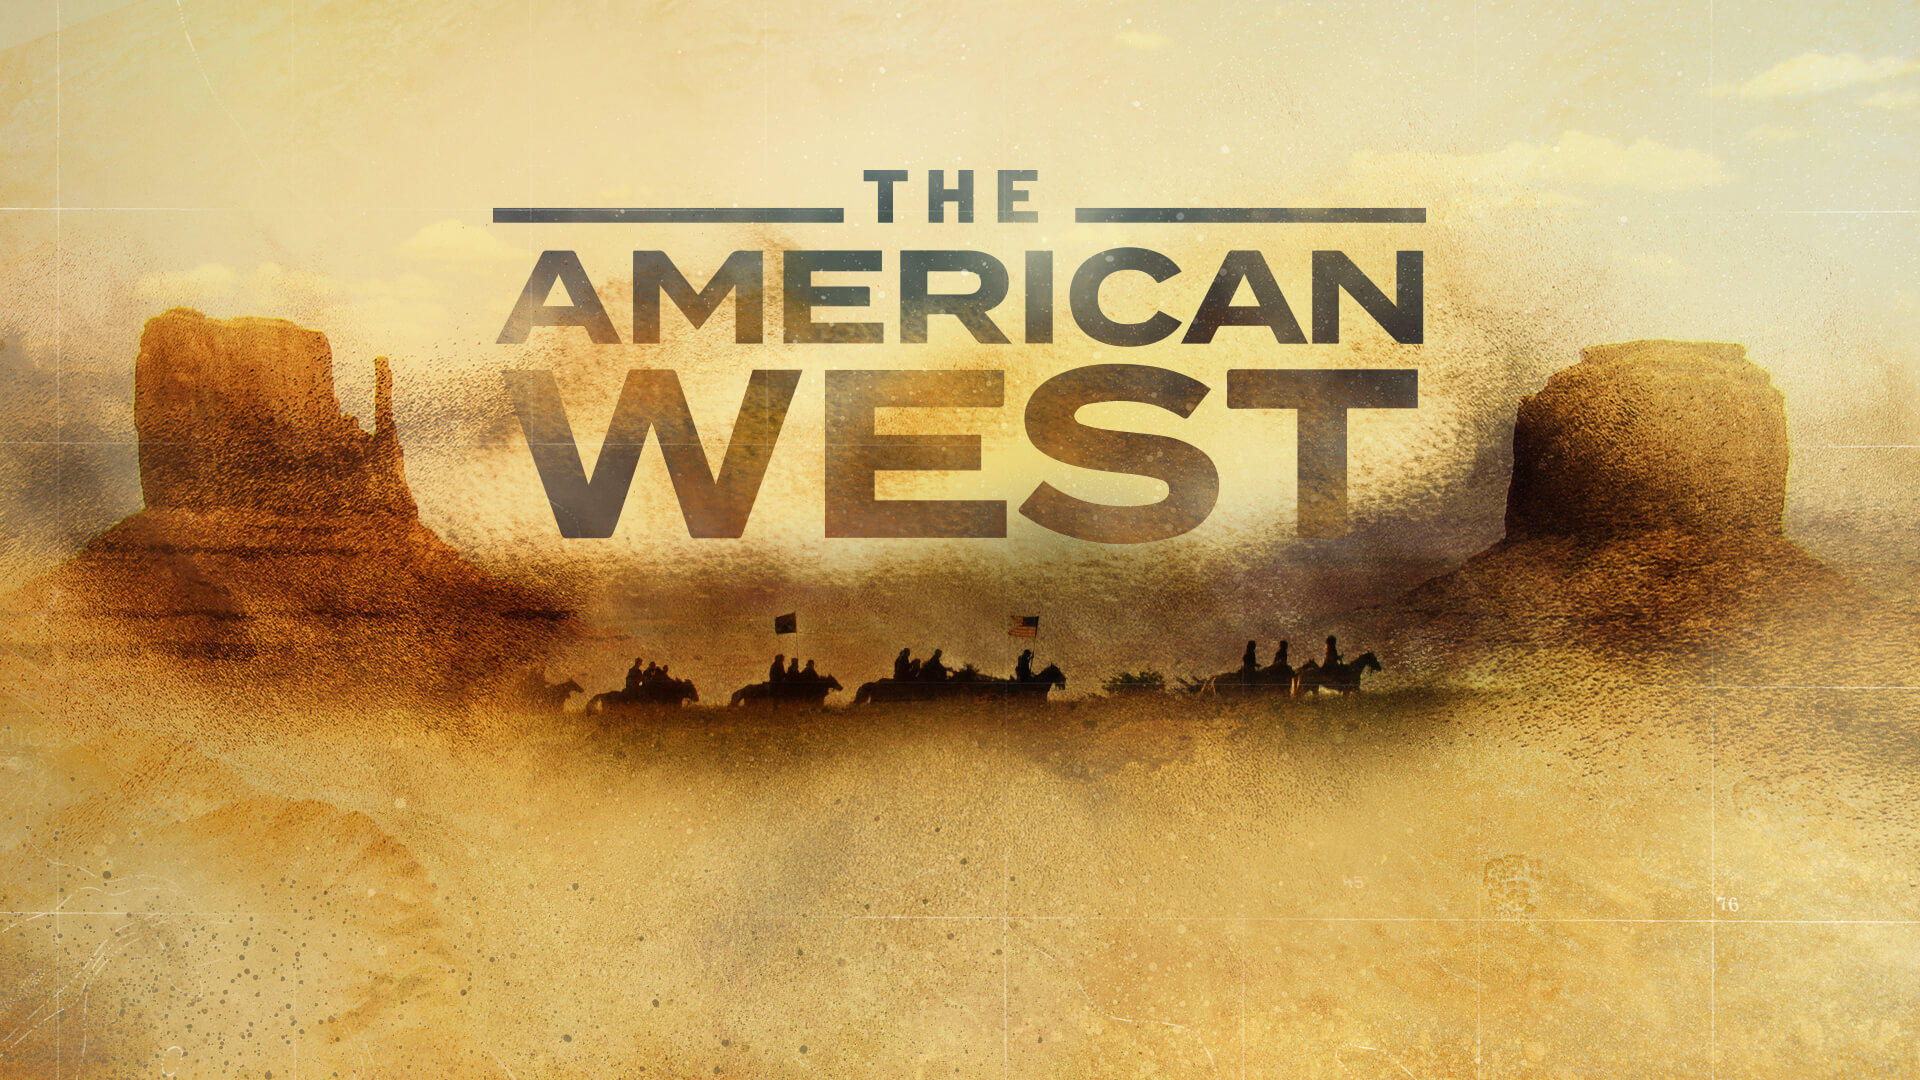 151030_AMC_THEWEST_TITLE_G_SML.jpg